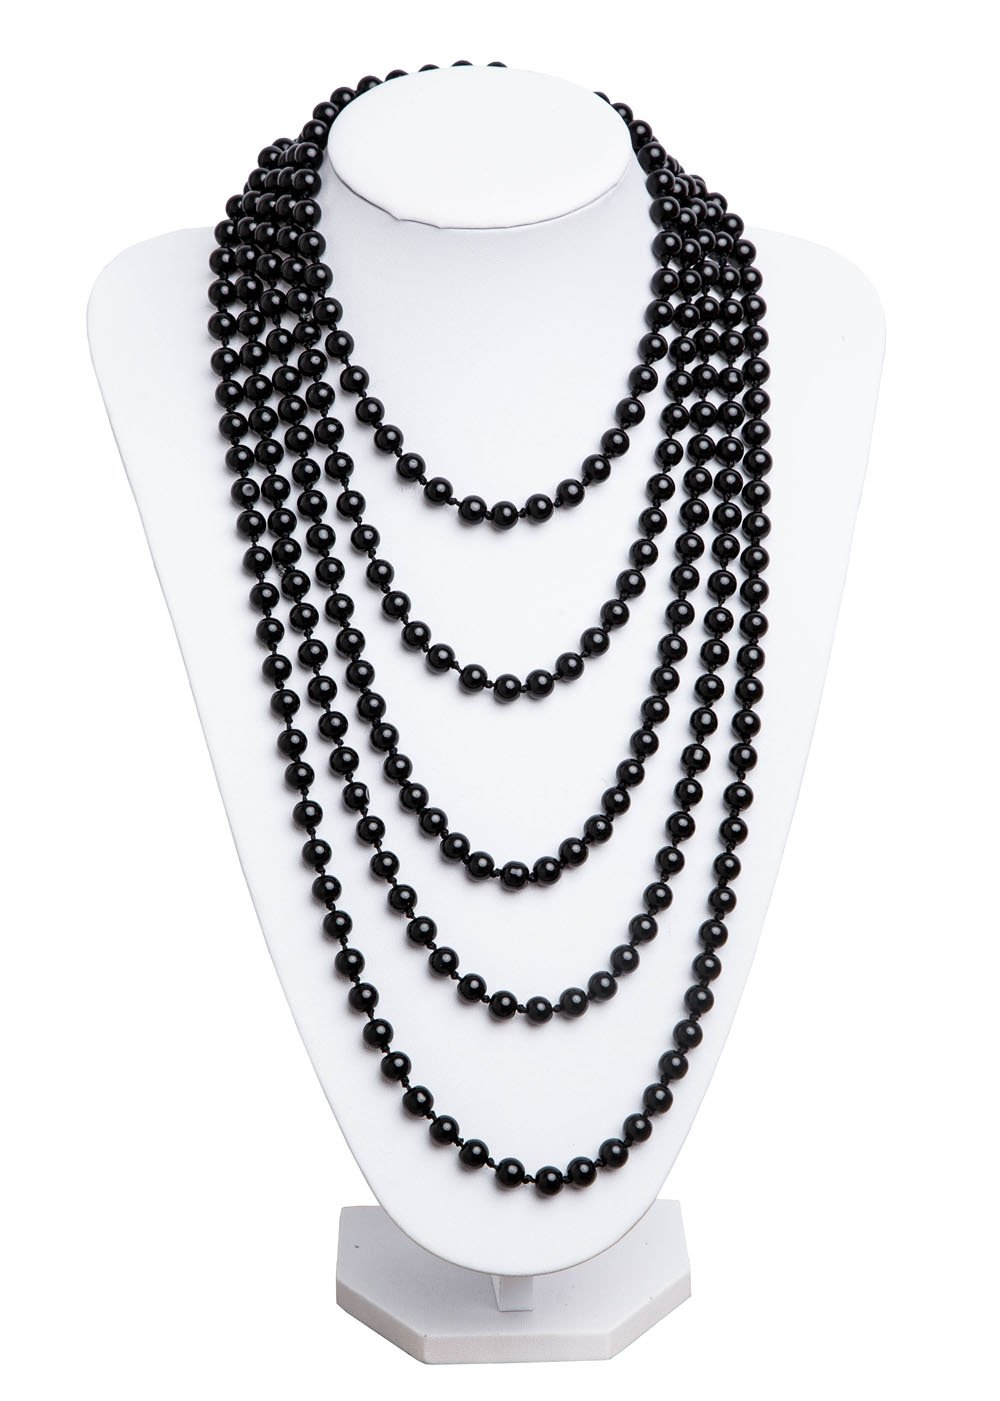 1920s Pearls Necklace Gatsby Accessories Vintage Costume Jewelry Faux Ivory Pearl Cream Long Necklace for Women (Black-1)